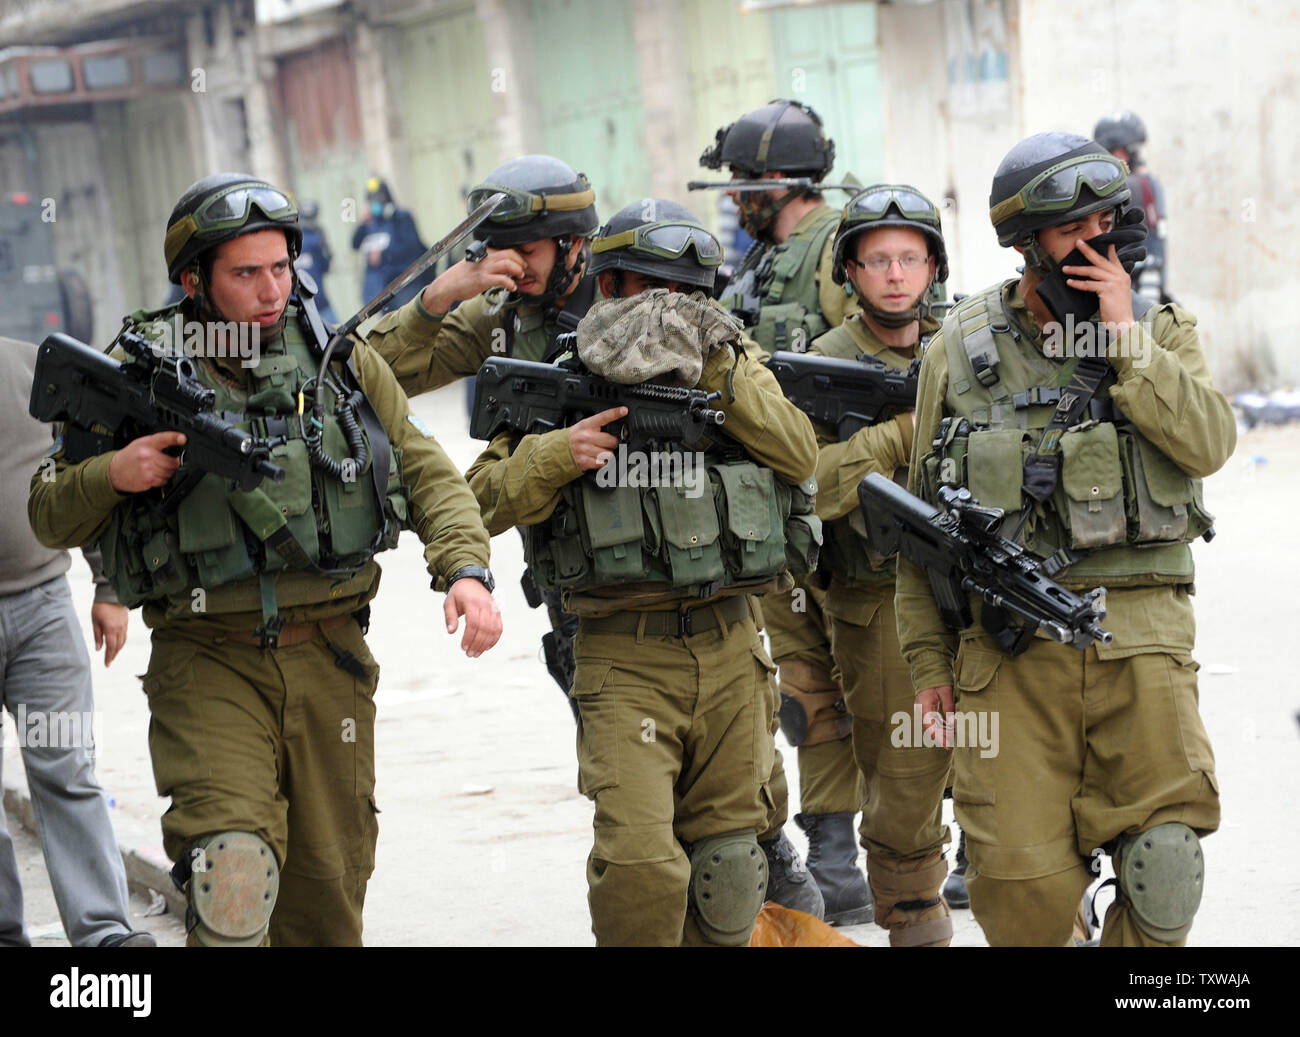 Israeli soldiers cover their faces after firing tear gas at  Palestinian and international activists during a protest against the closure of Shuhada Street to Palestinians in Hebron, West Bank, February 25, 2011. Demonstrators shouted slogans against the U.S. for vetoing the UN Security Council resolution condemning Israeli settlements.  UPI/Debbie Hill. - Stock Image